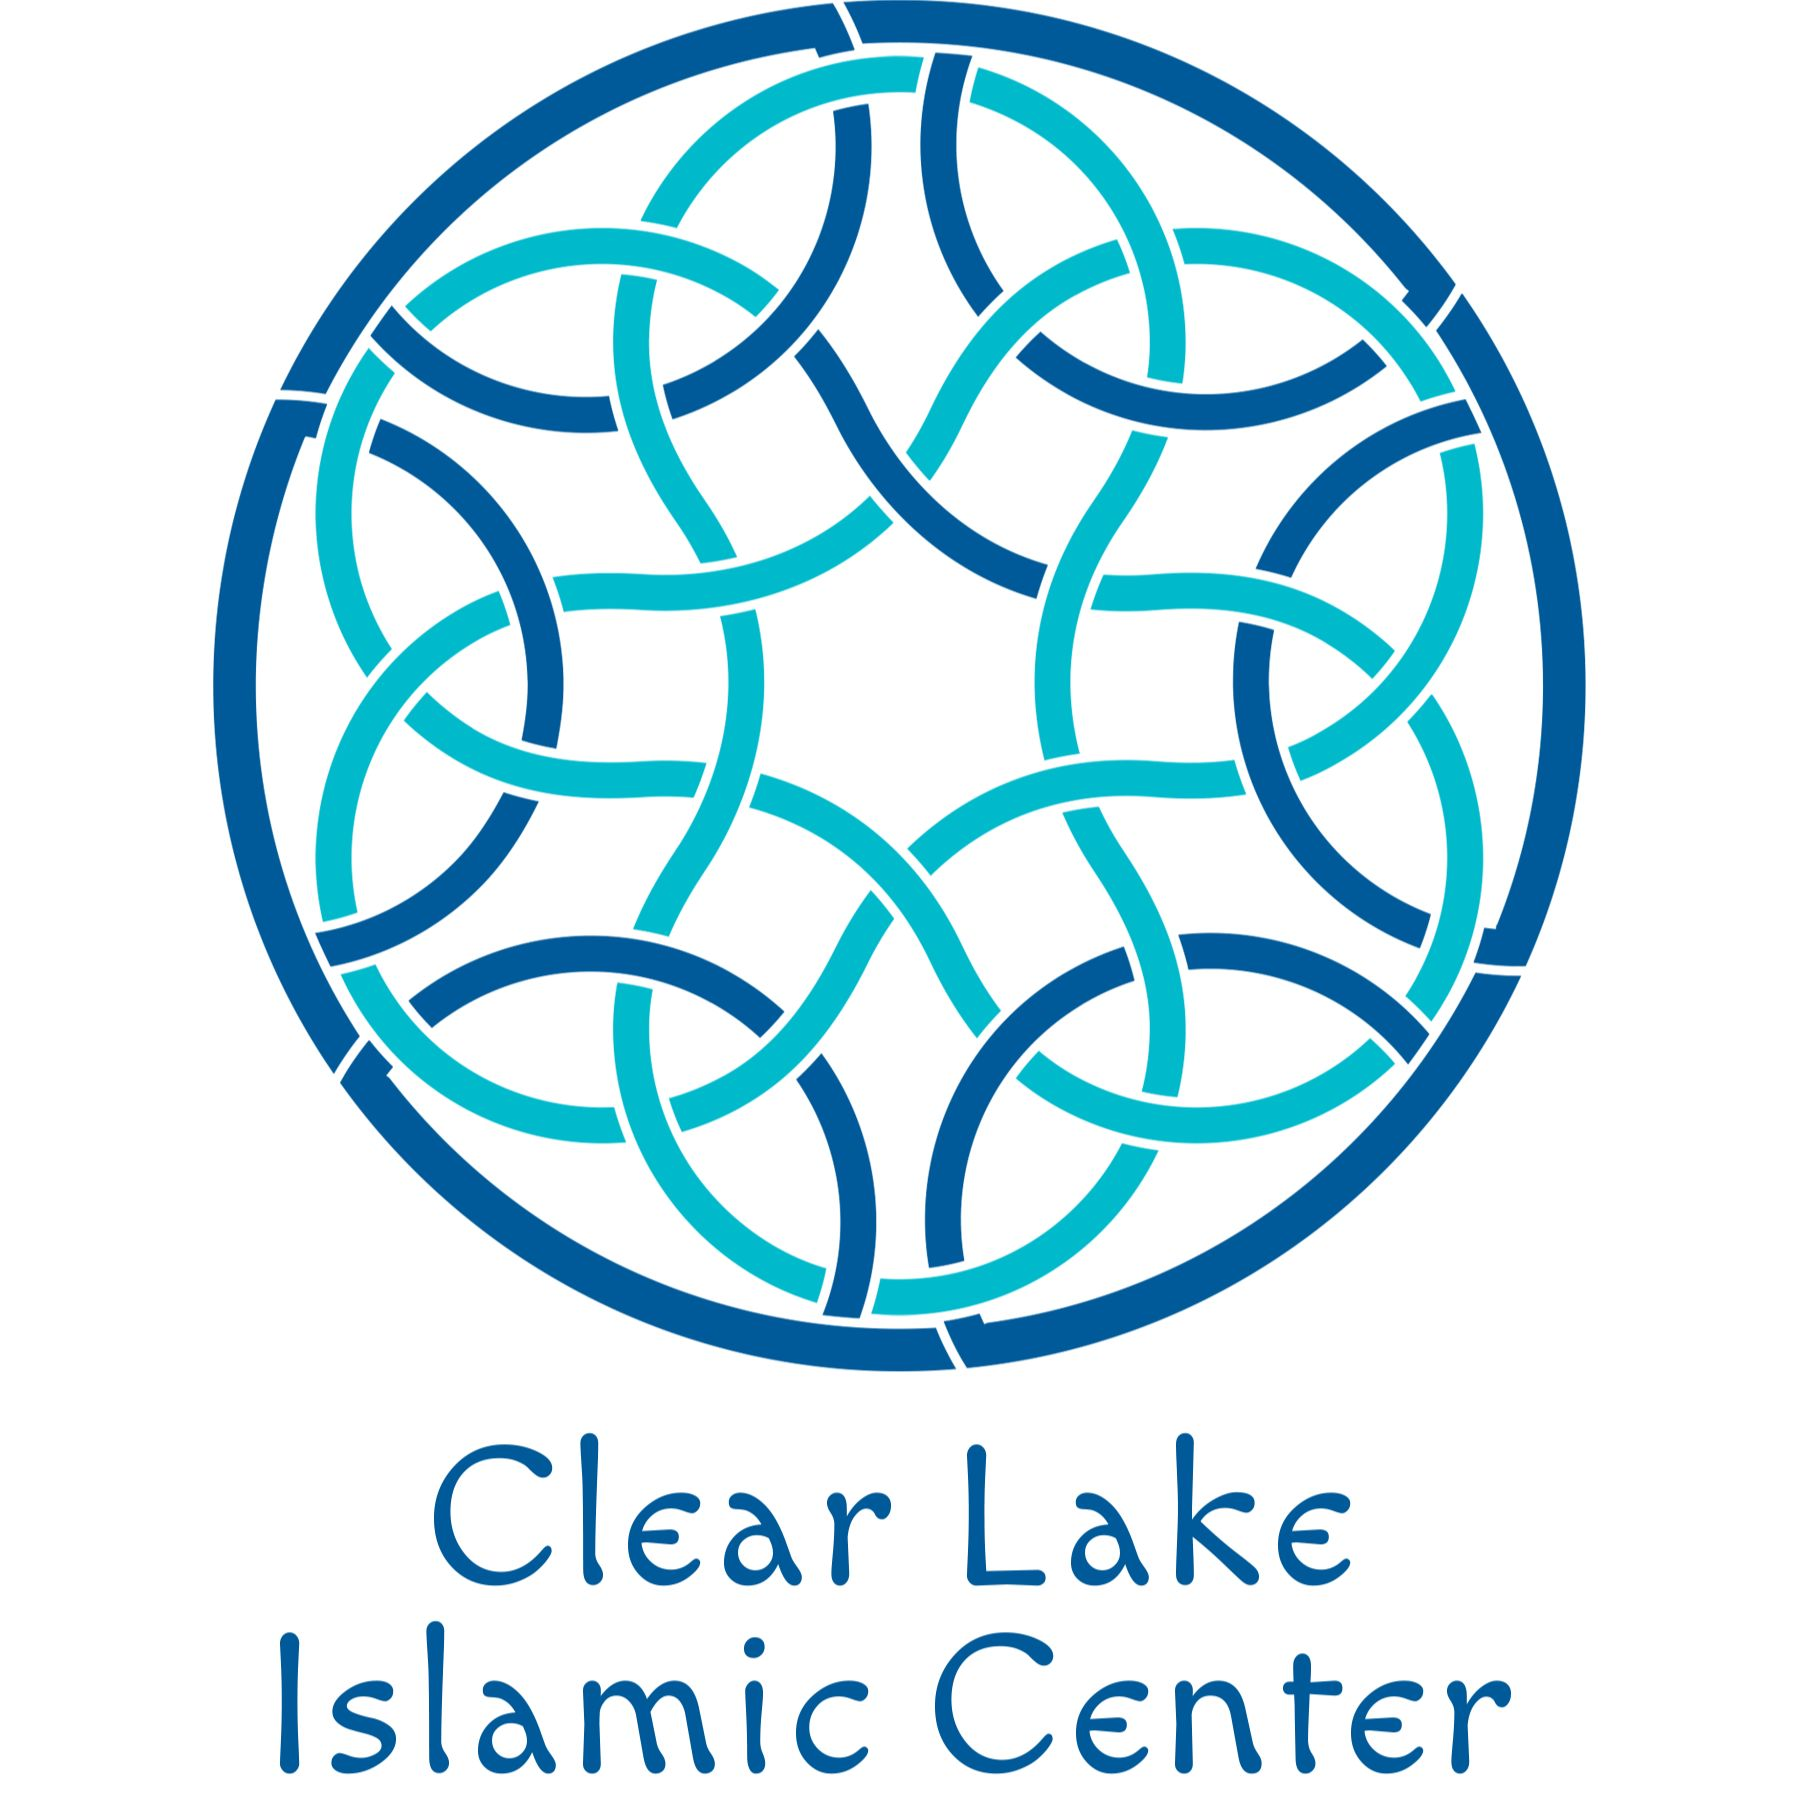 Clear Lake Islamic Center